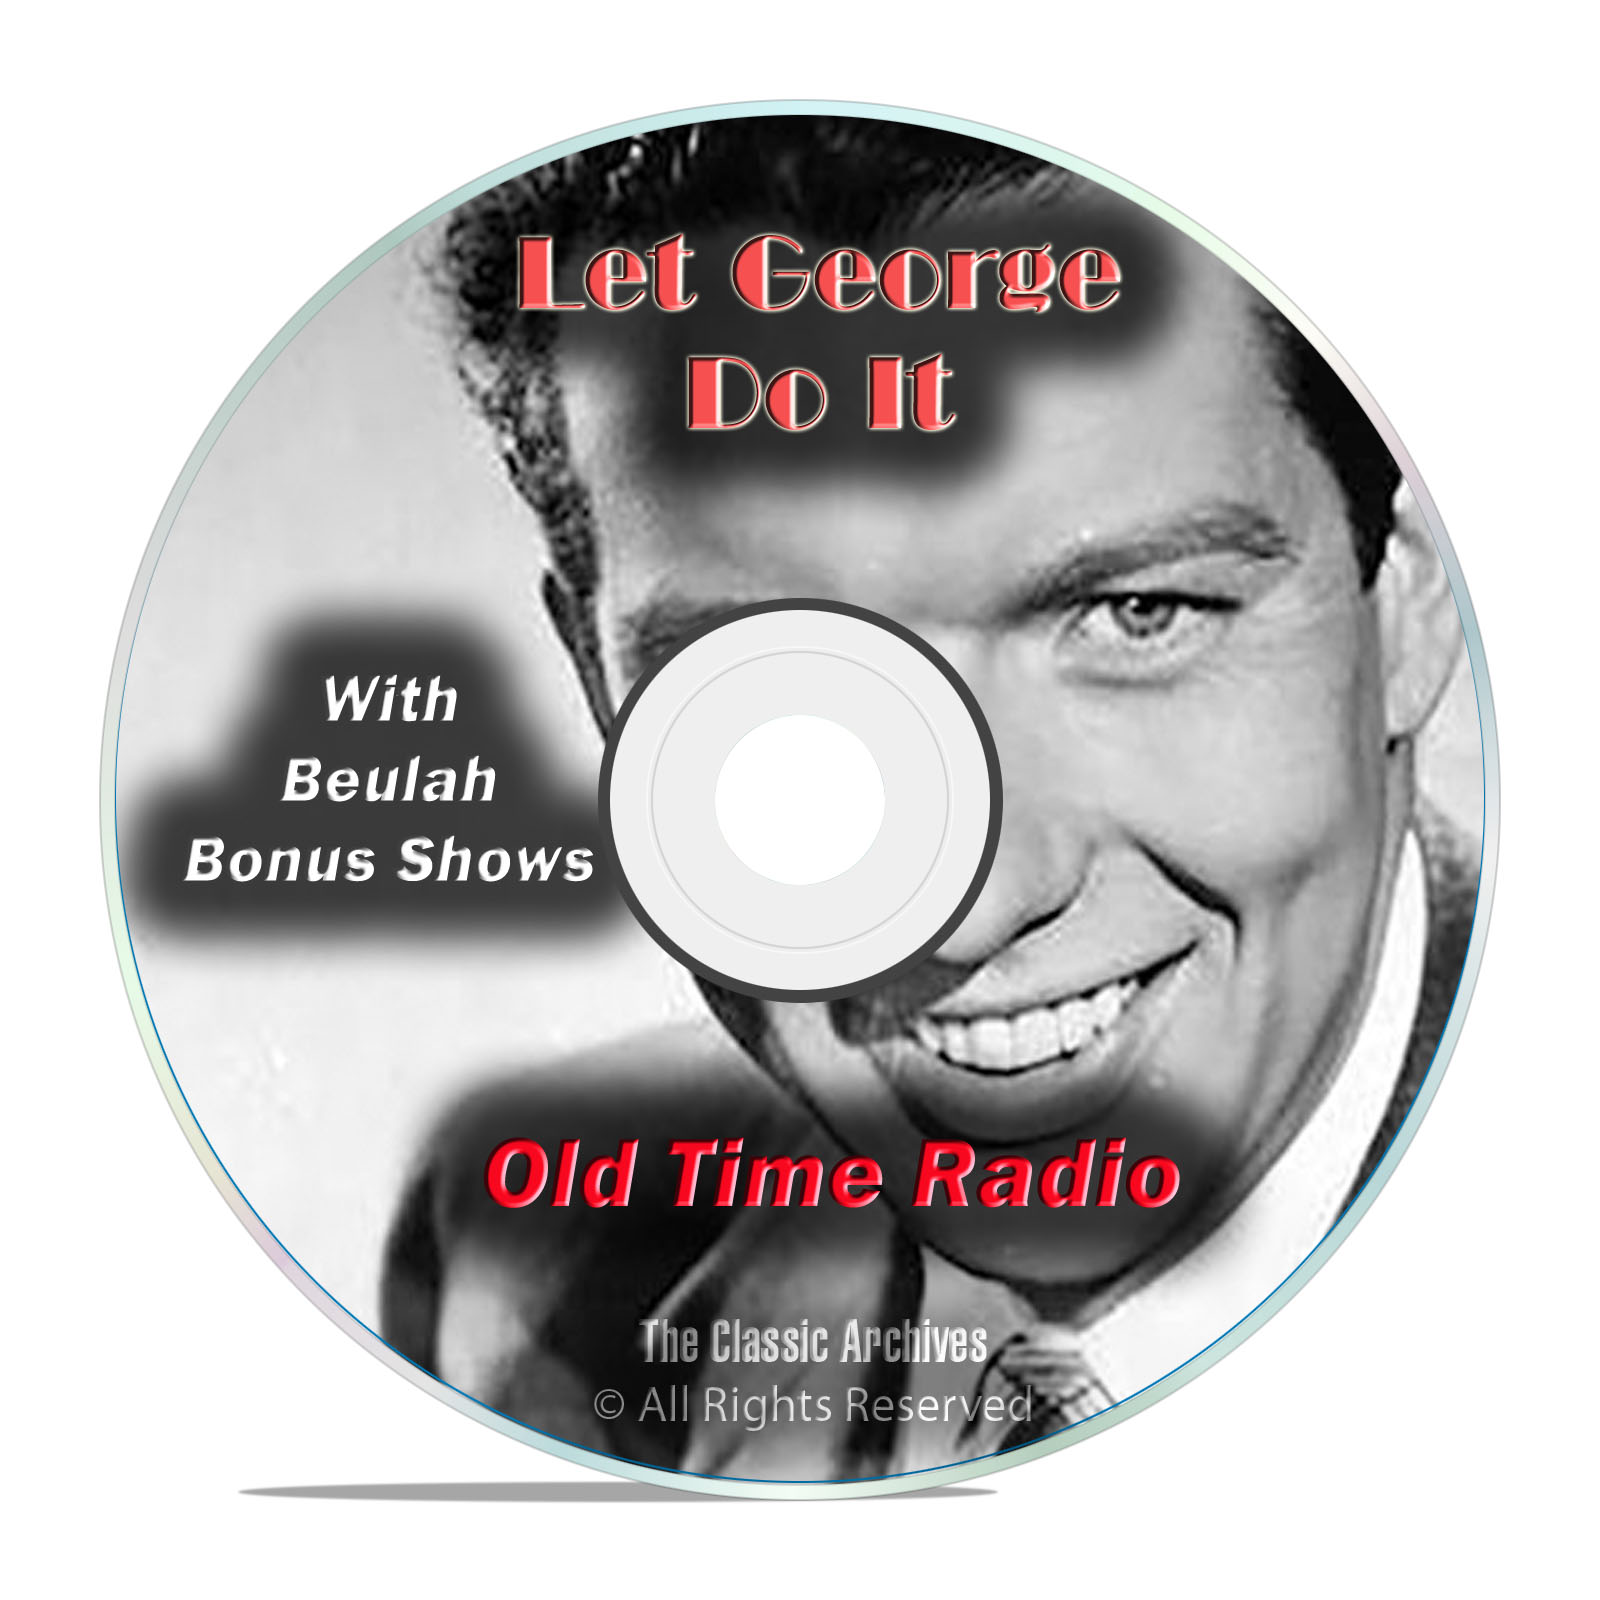 Let George Do It, 713 Classic Old Time Radio Drama Shows, OTR mp3 DVD